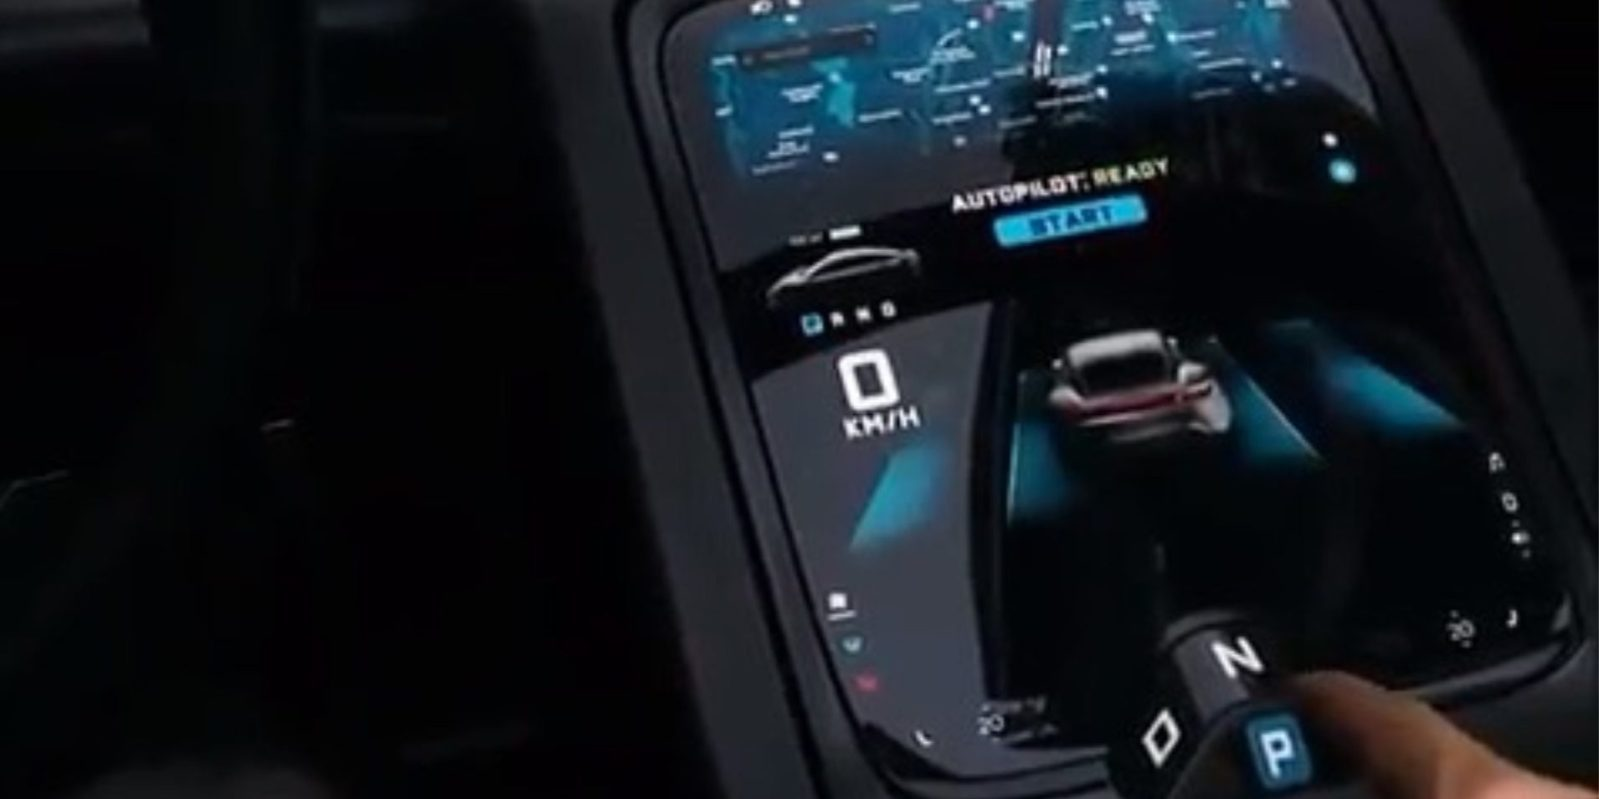 Porsche Taycan Interior And User Interface Leaks With Autopilot Feature Liberty Plugins